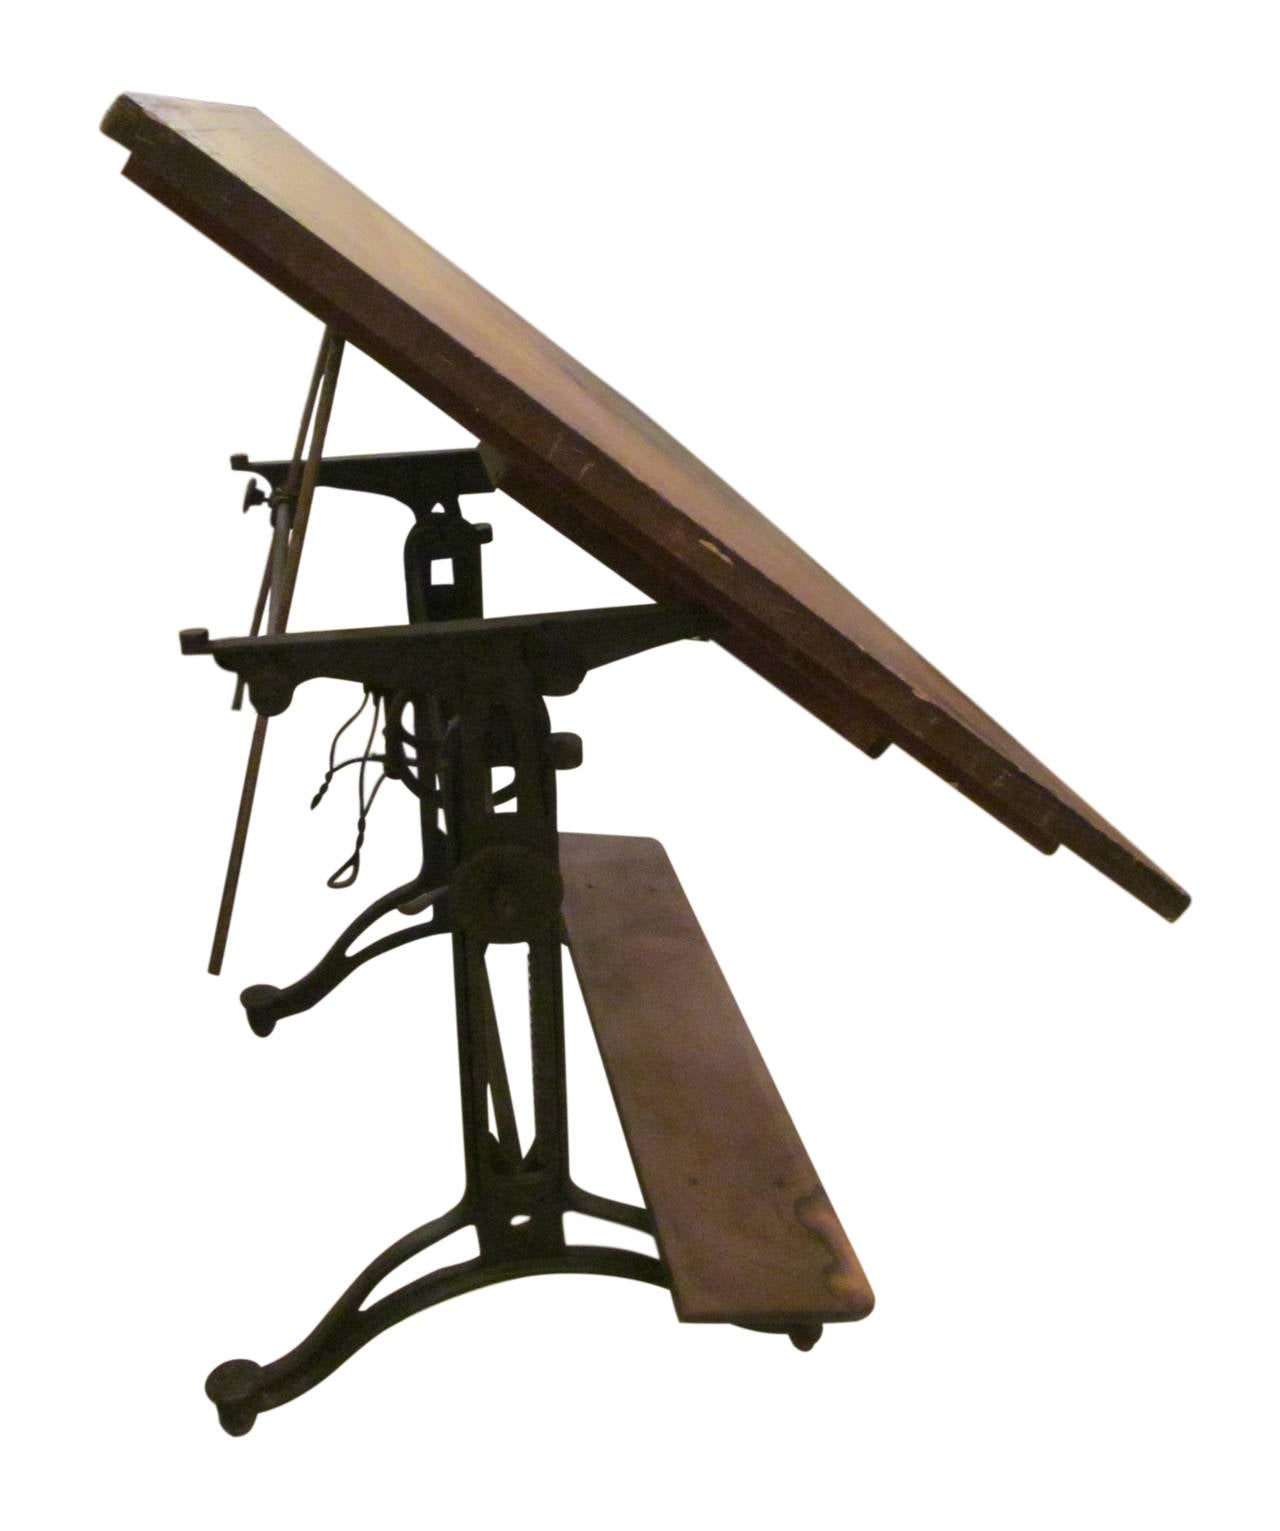 Adjustable Drafting Table With Drawer Wheels And Built In